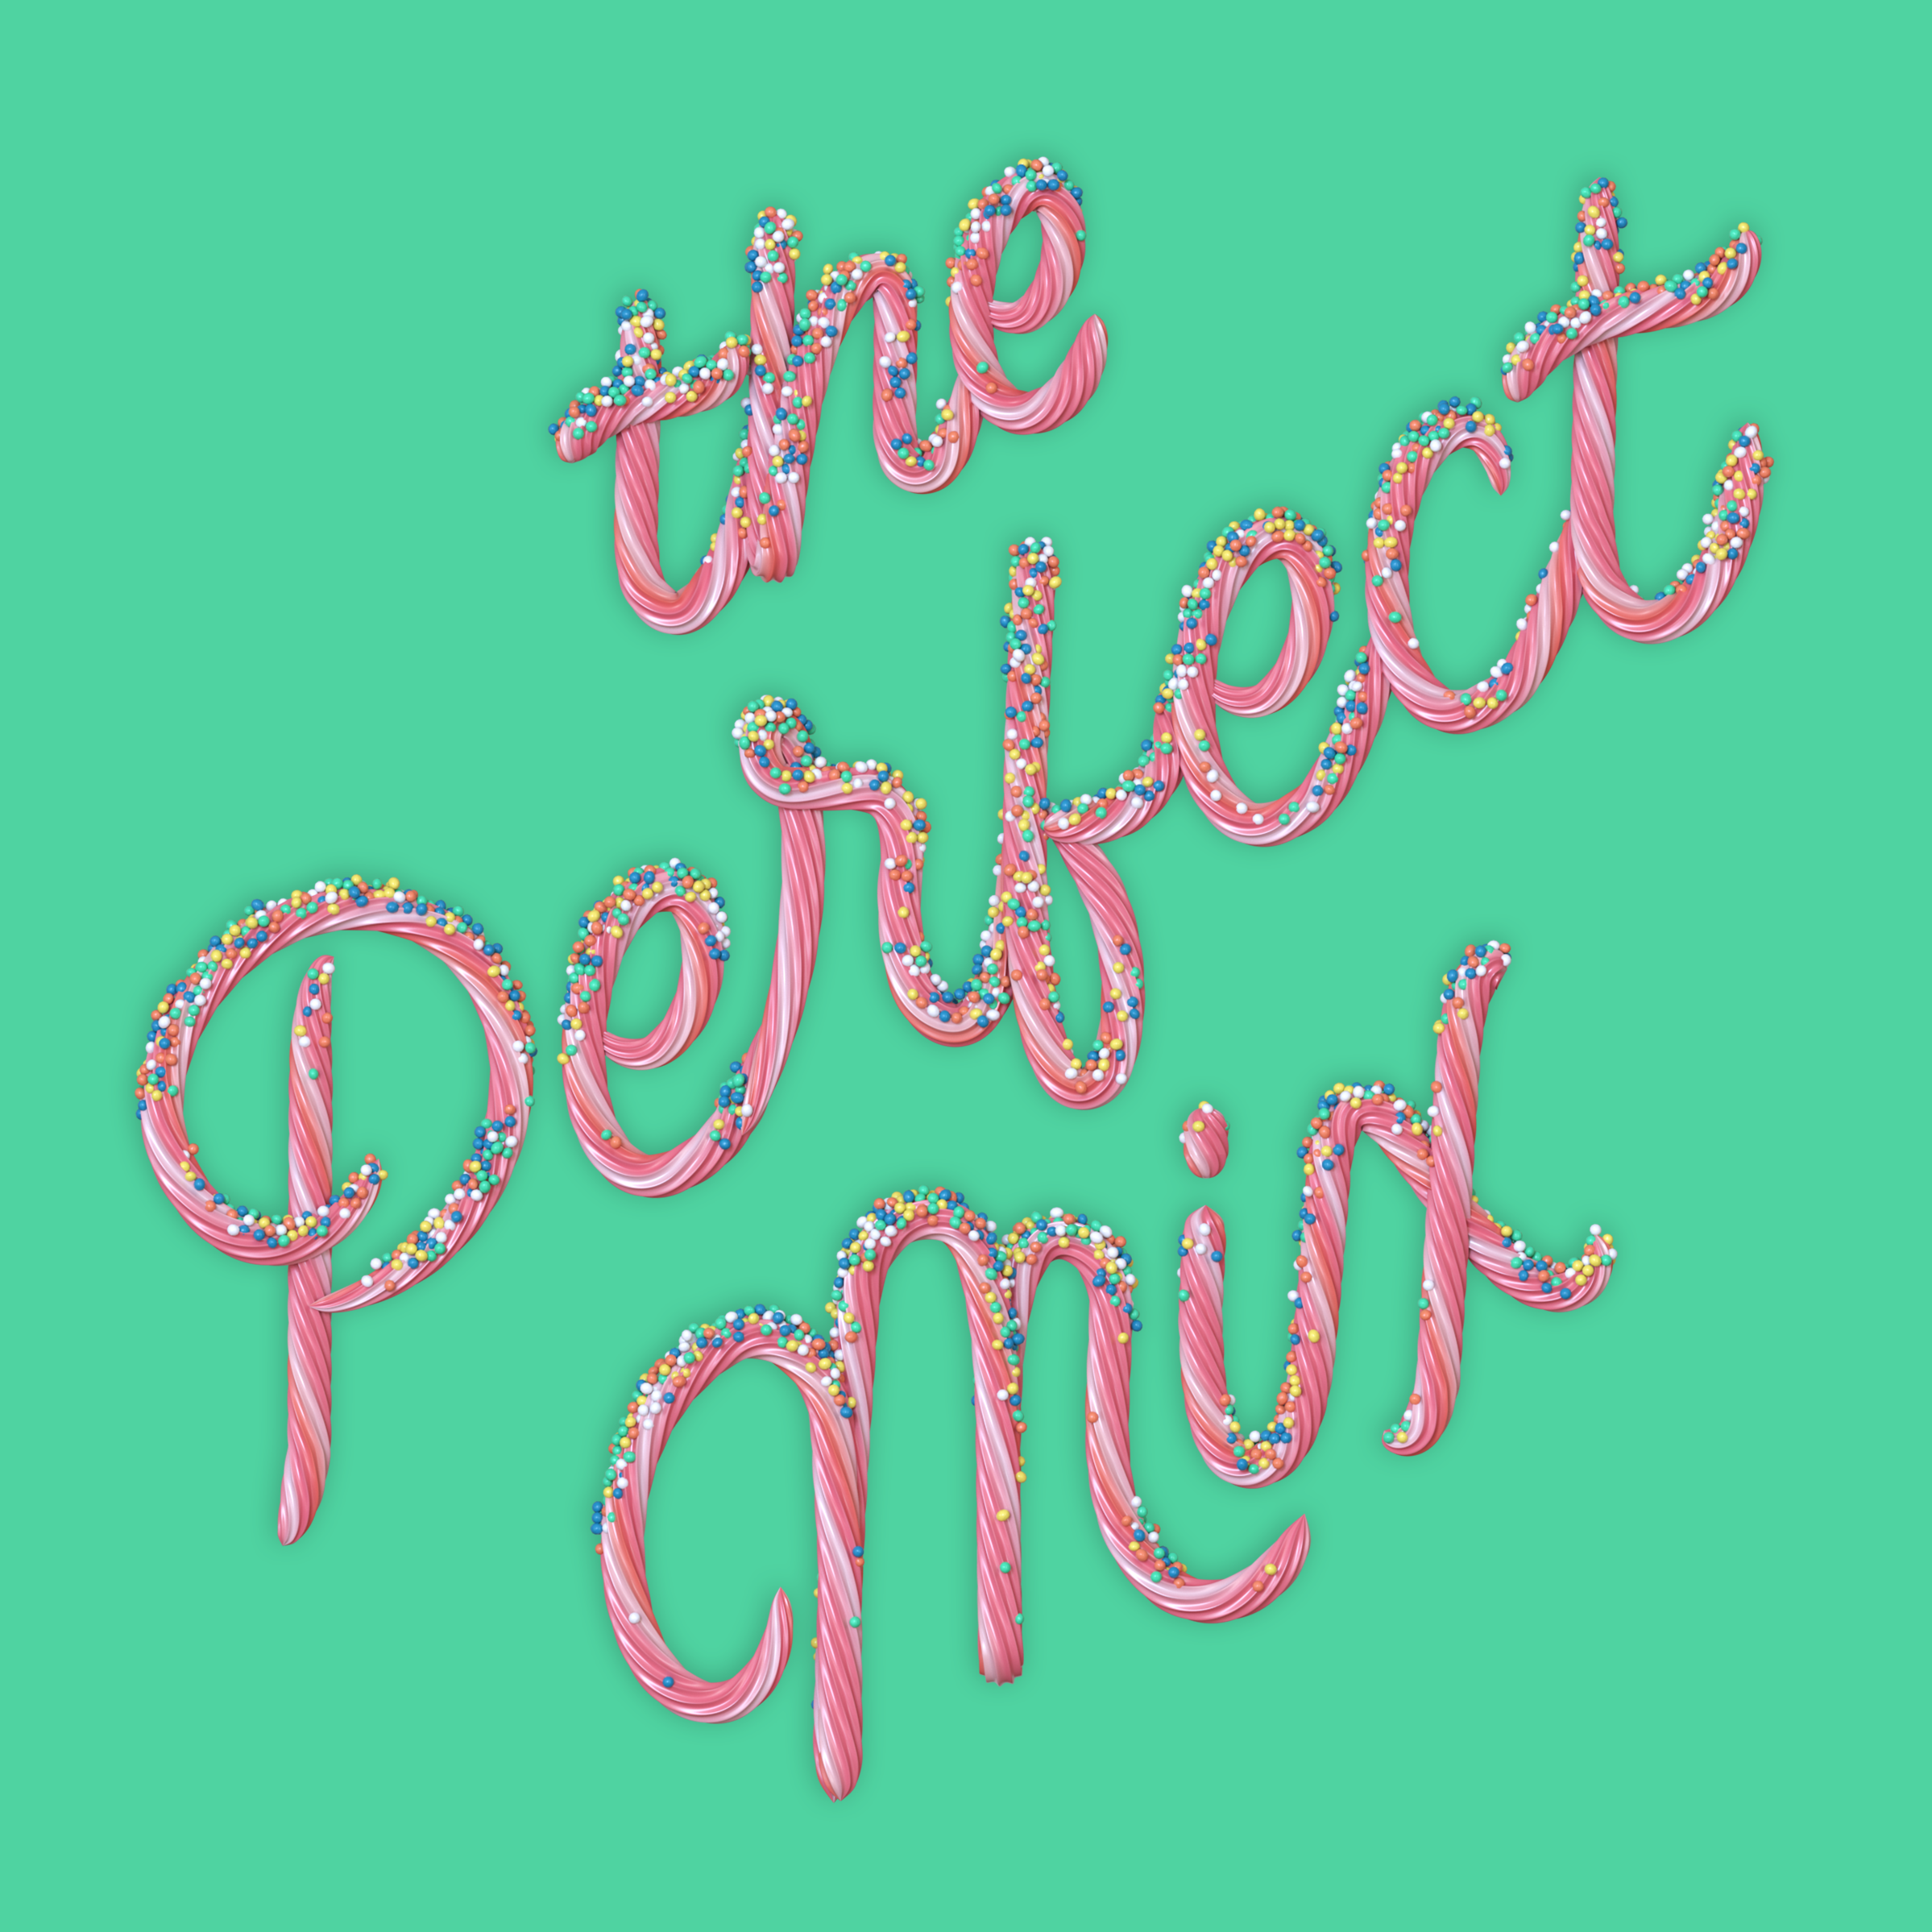 """""""The Perfect Mix"""" 3D type lettering made of cake icing by Noah Camp"""